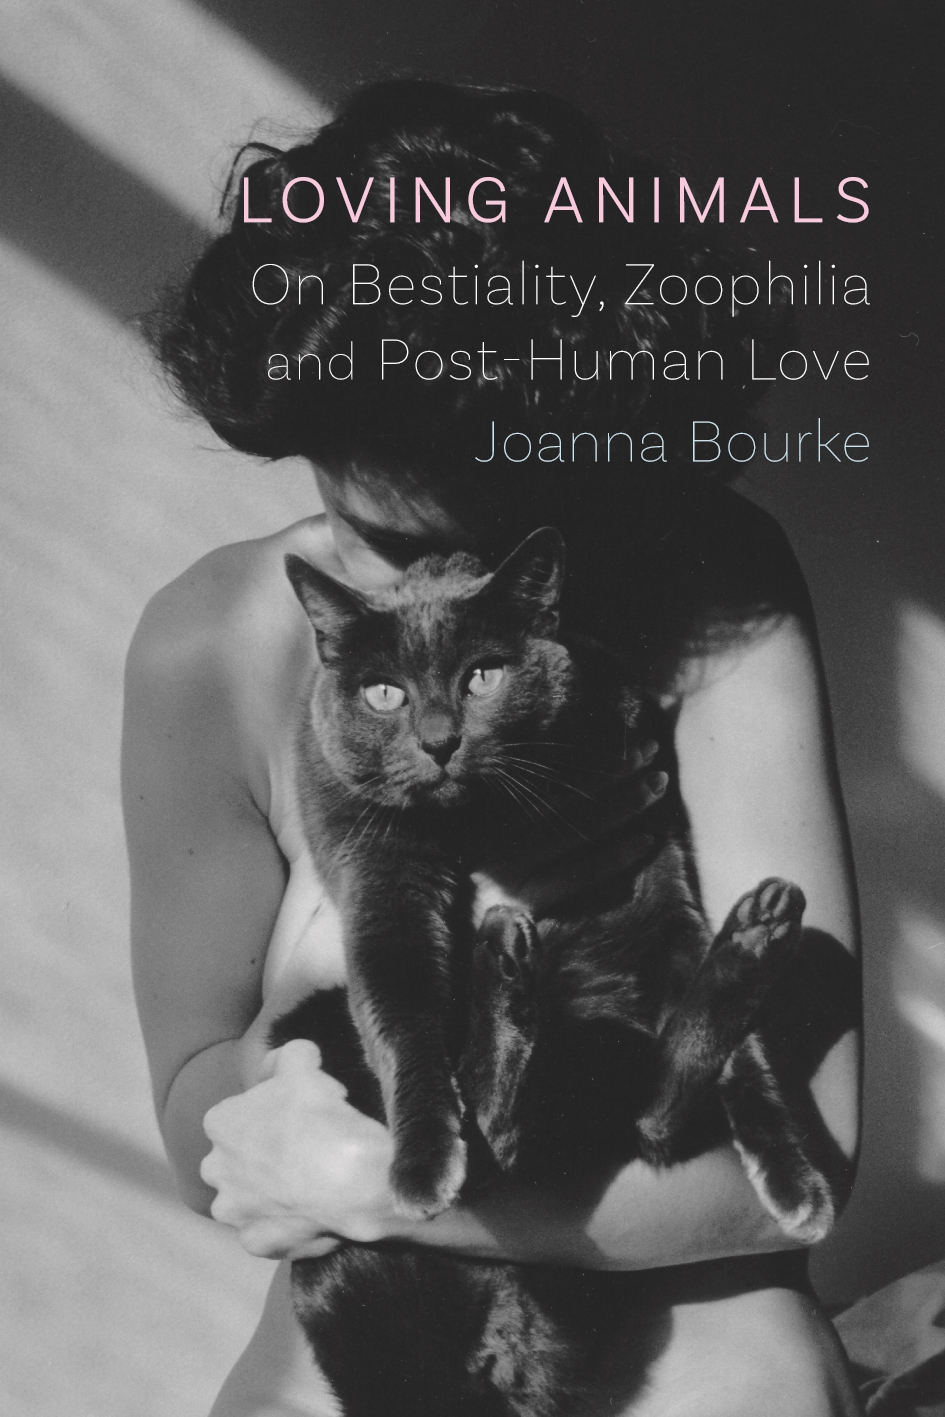 Loving Animals: On Bestiality, Zoophilia, and Post-Human Love